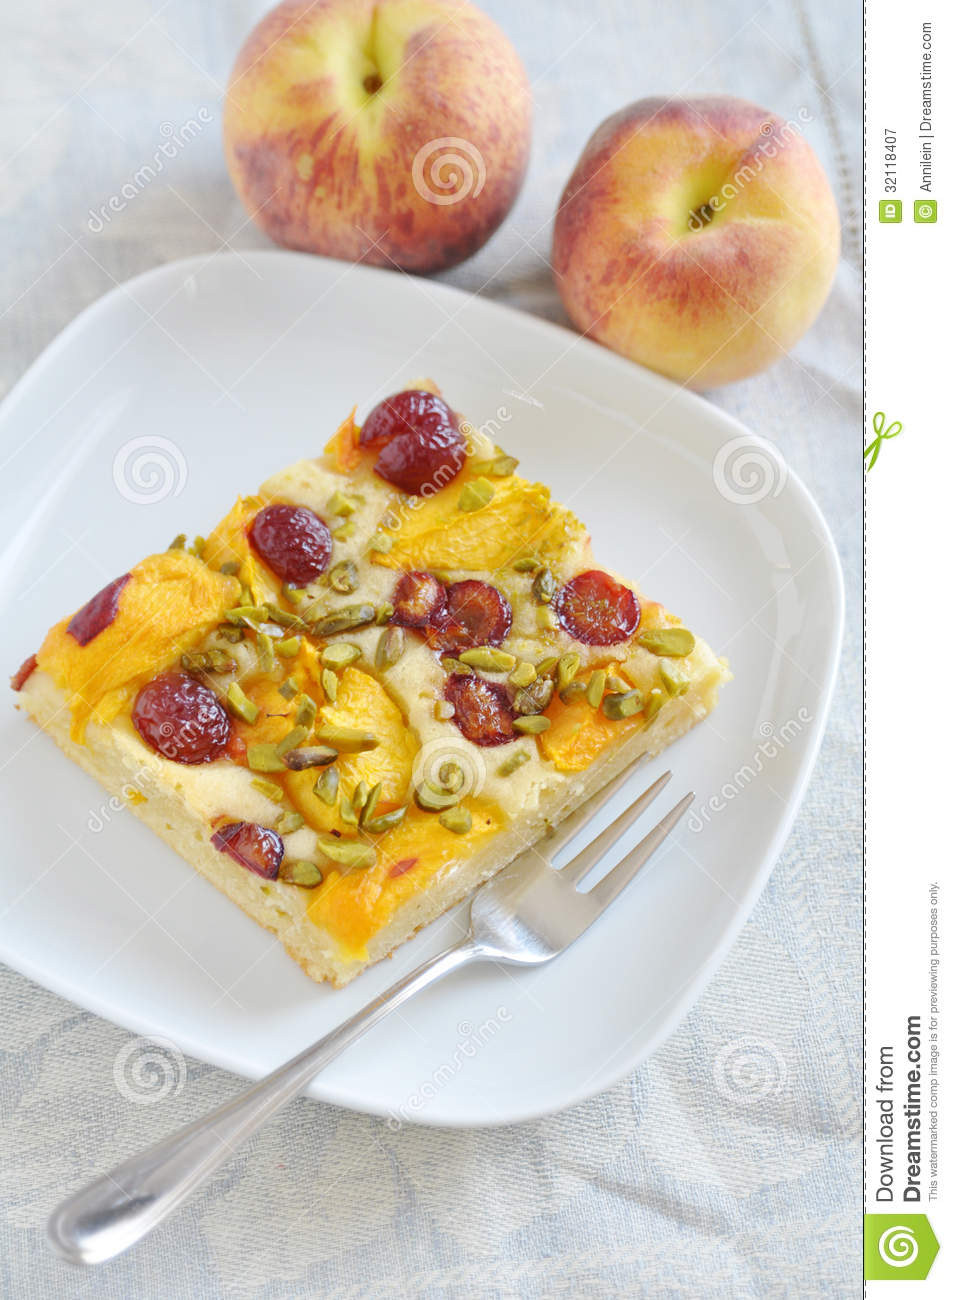 Peach Cherry Pie Royalty Free Stock Photography - Image ...